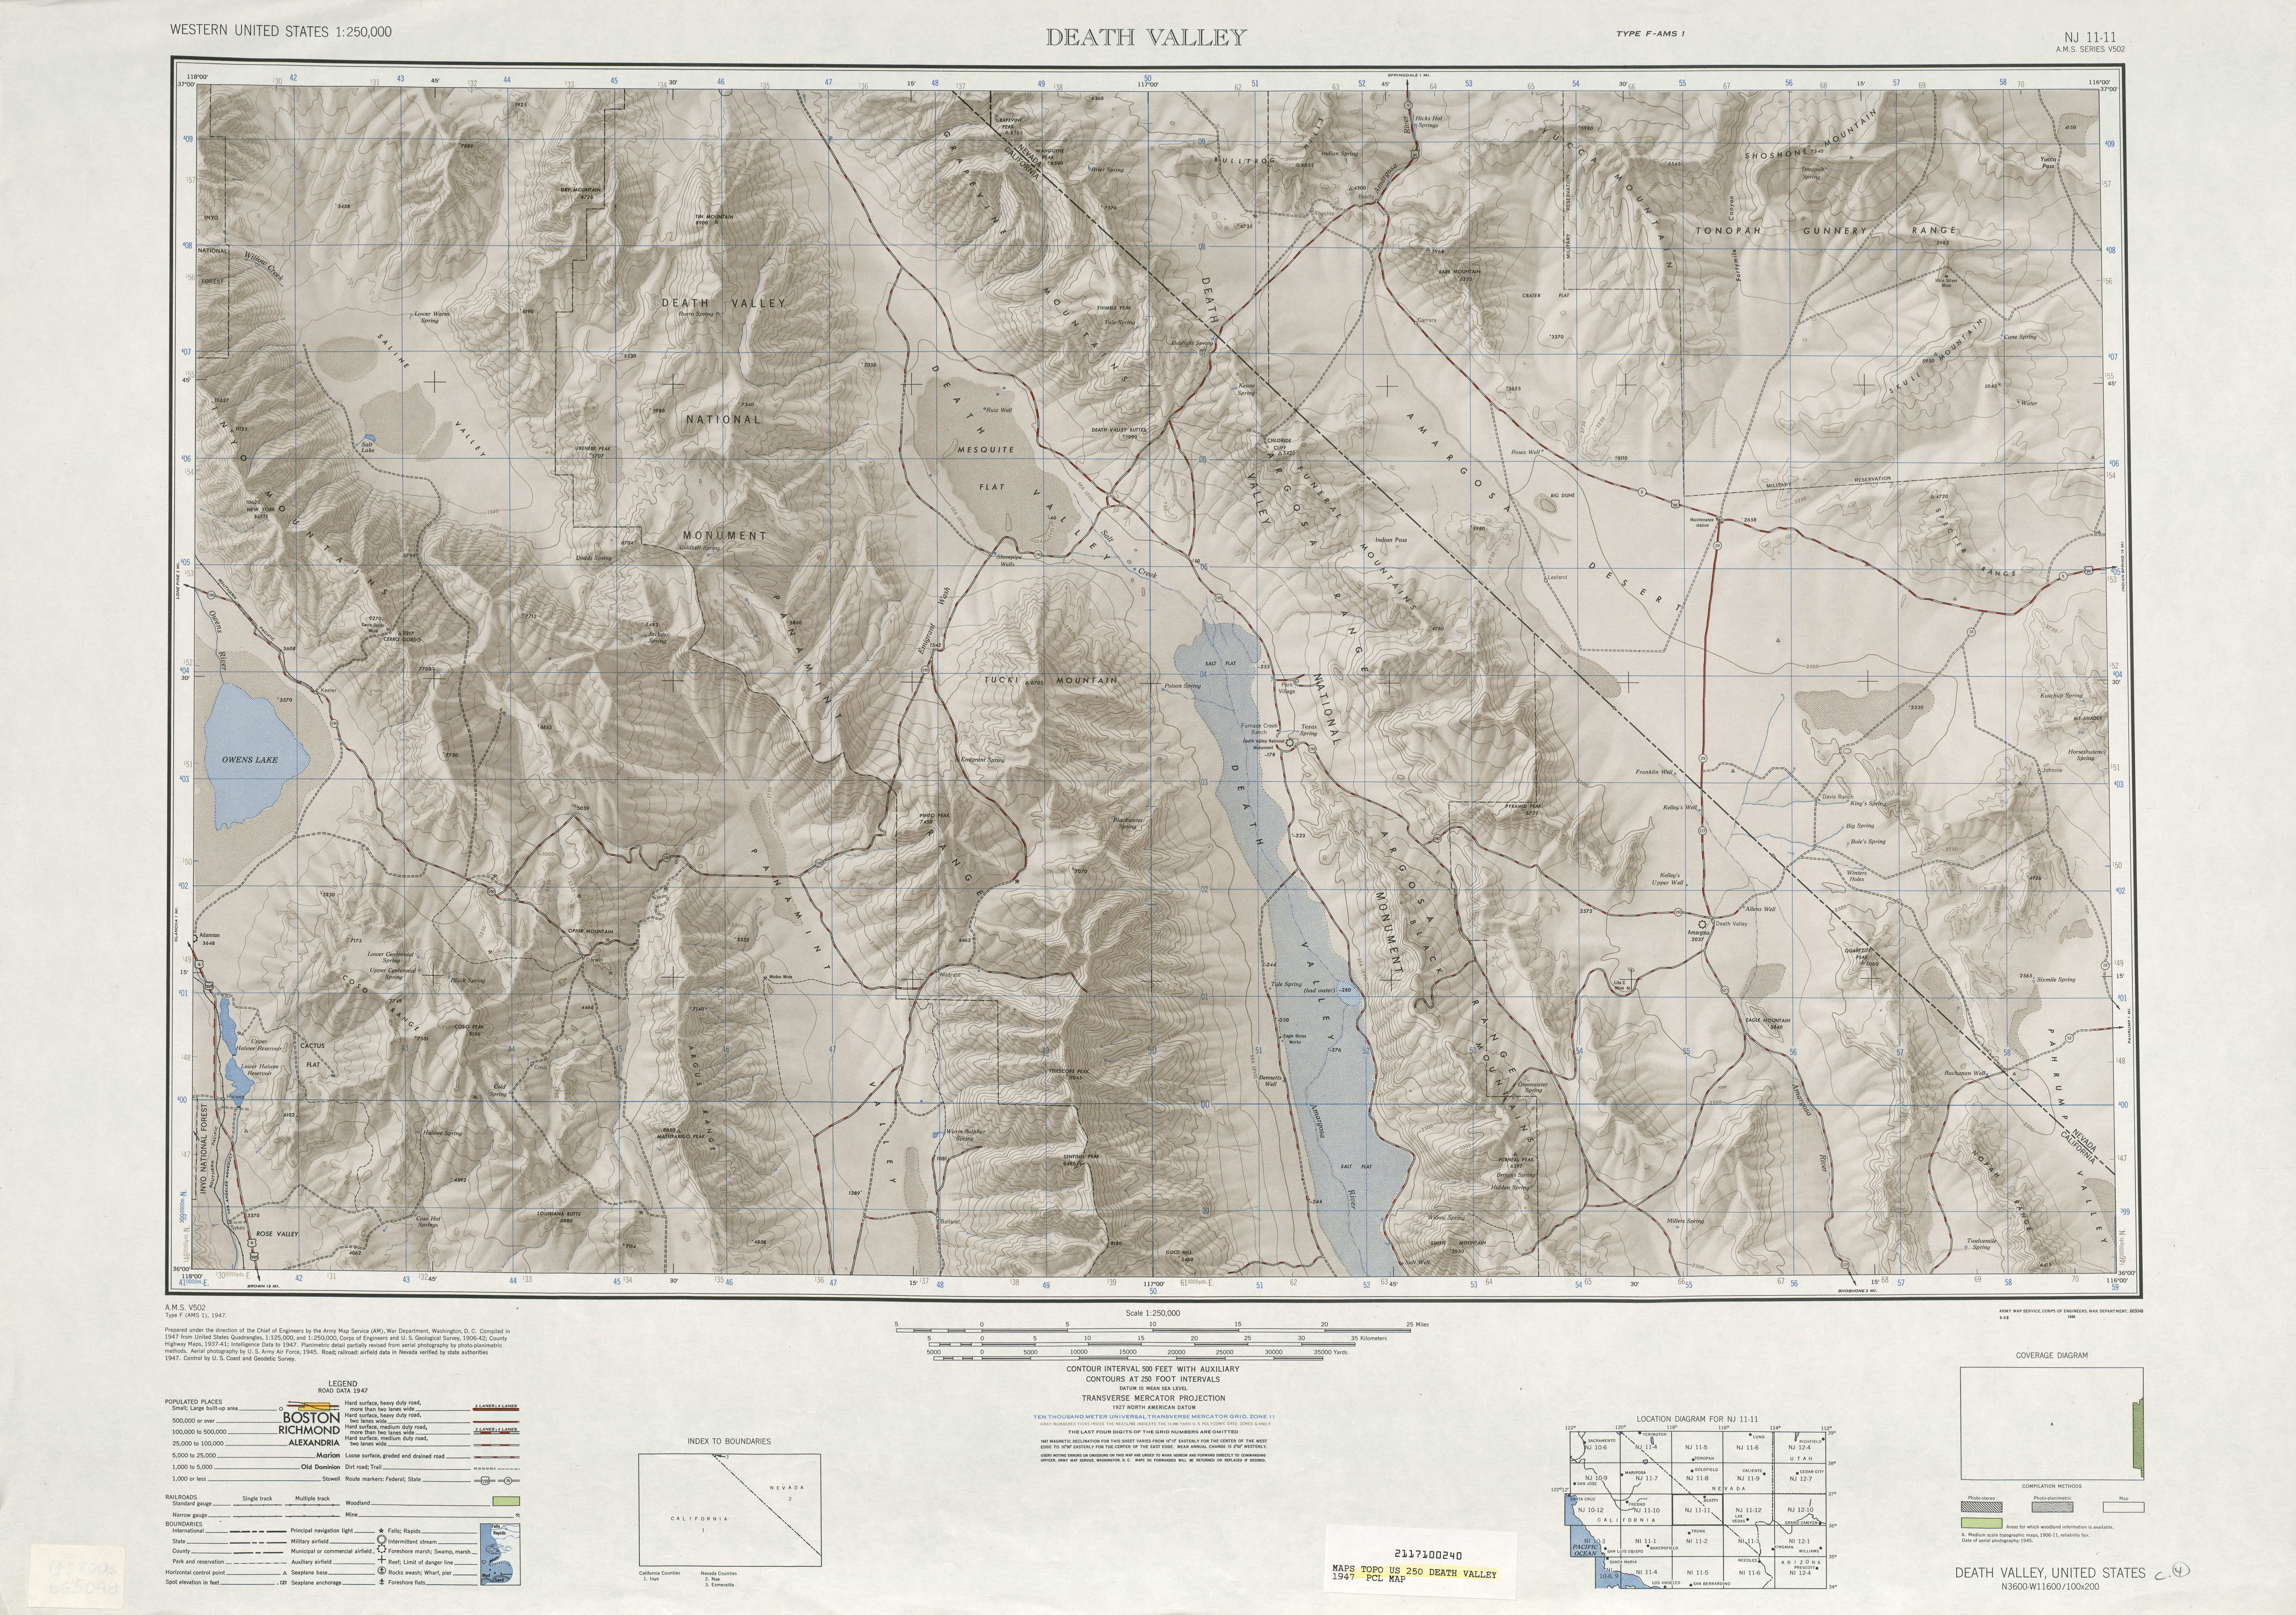 United States Map With Death Valley Death Valley Shaded Relief Map